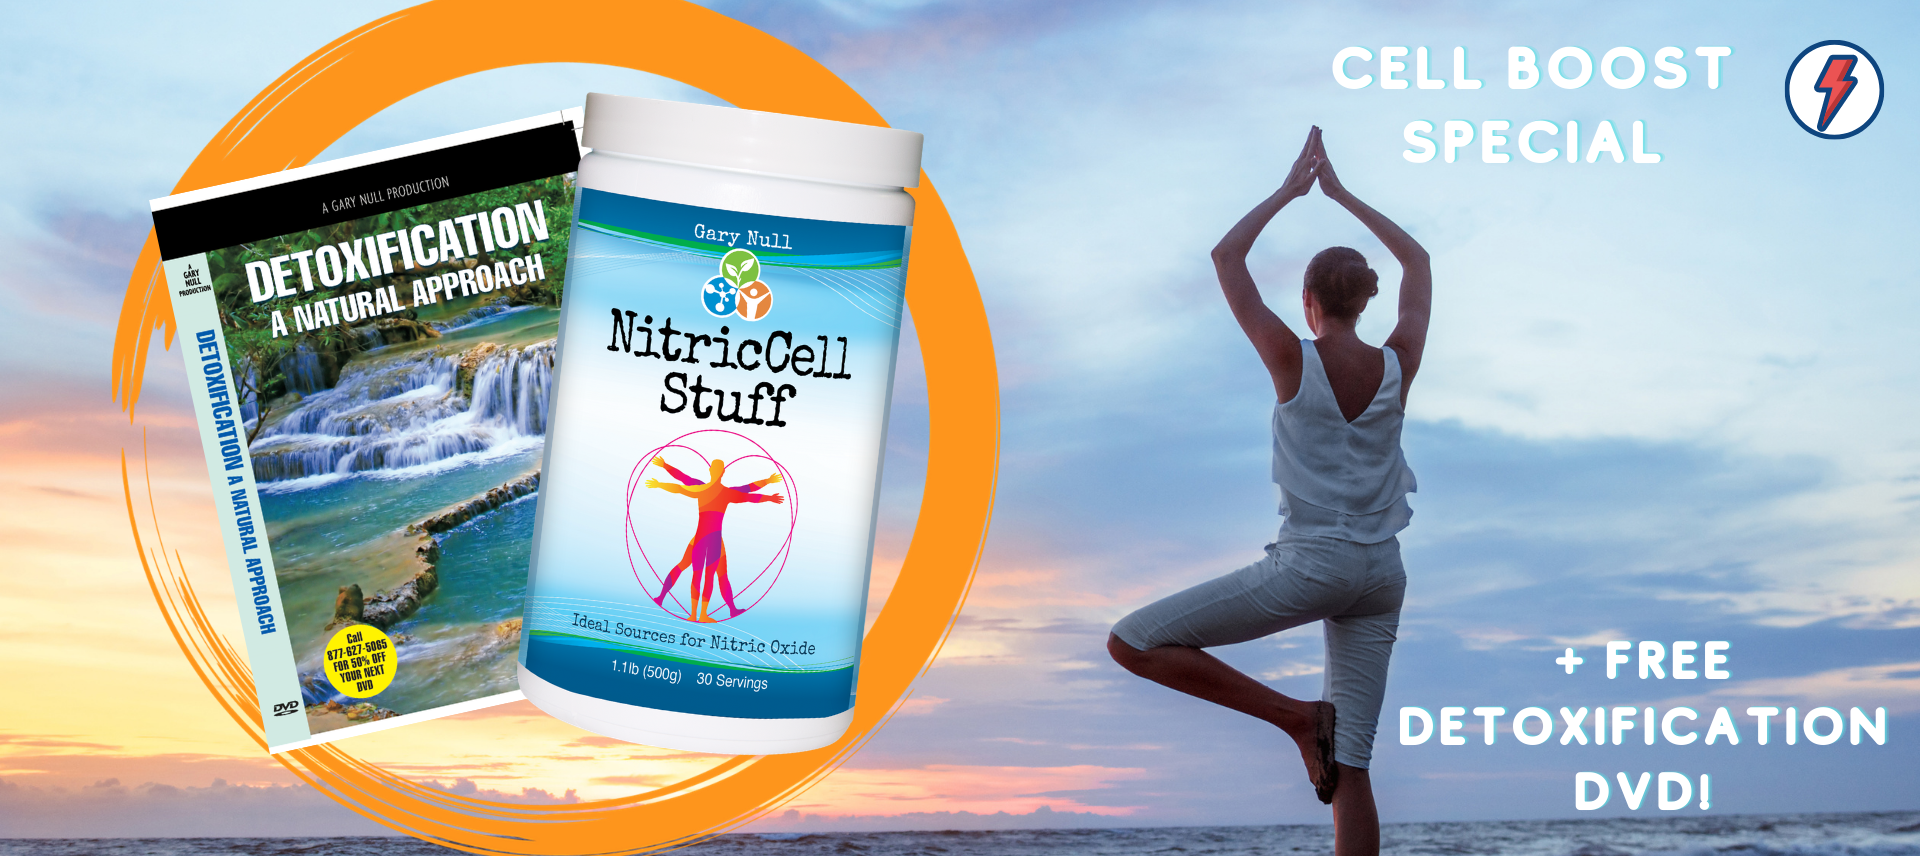 Cell Boost Special: NitricCell Stuff 500 grams with FREE Detox DVD